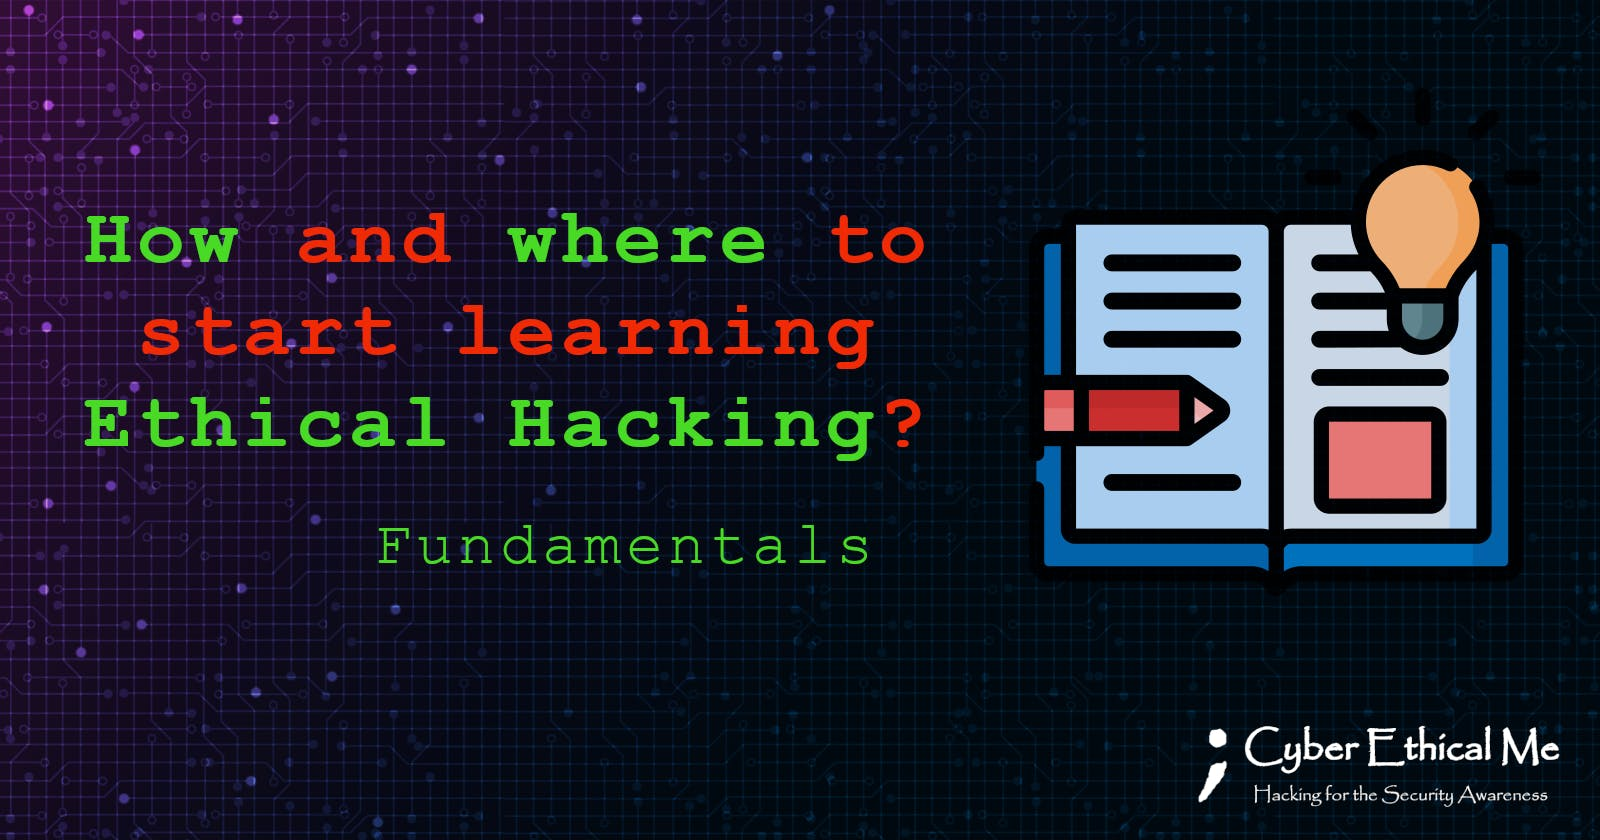 How can I learn Ethical Hacking? Where should I start?